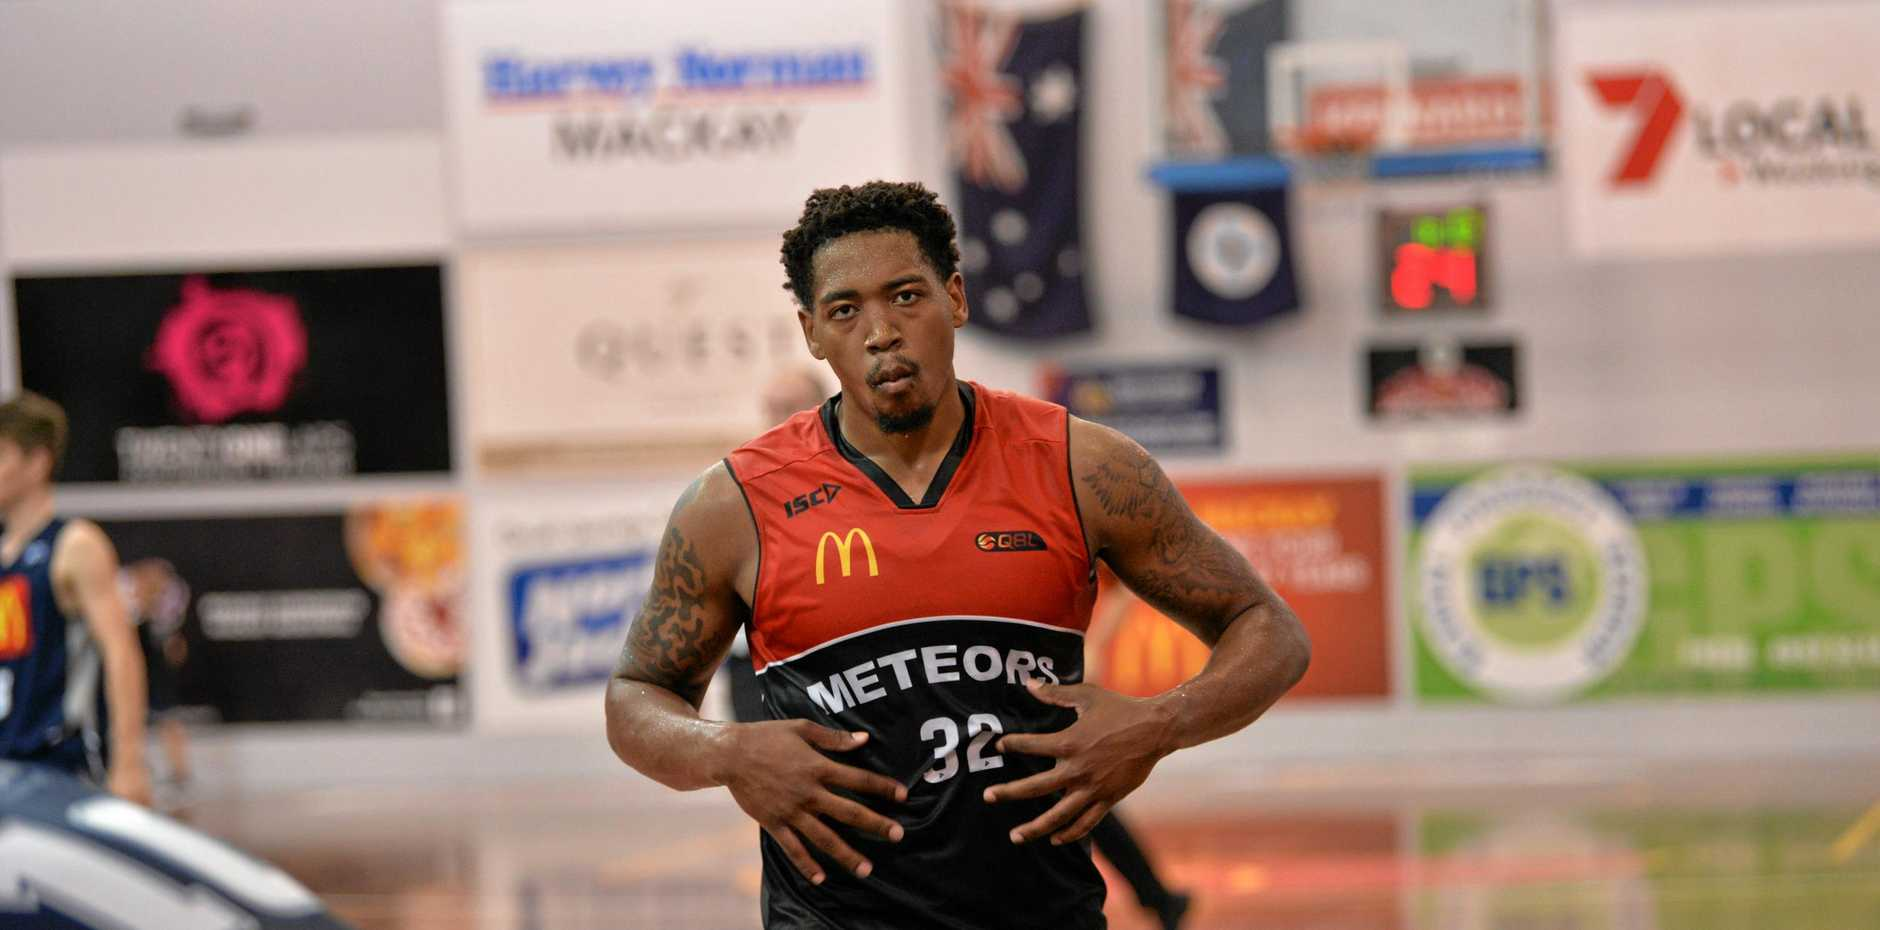 THE HUSTLE: Mackay Meteors player Bryce Washington said his team's true identity was their grit and drive on court.